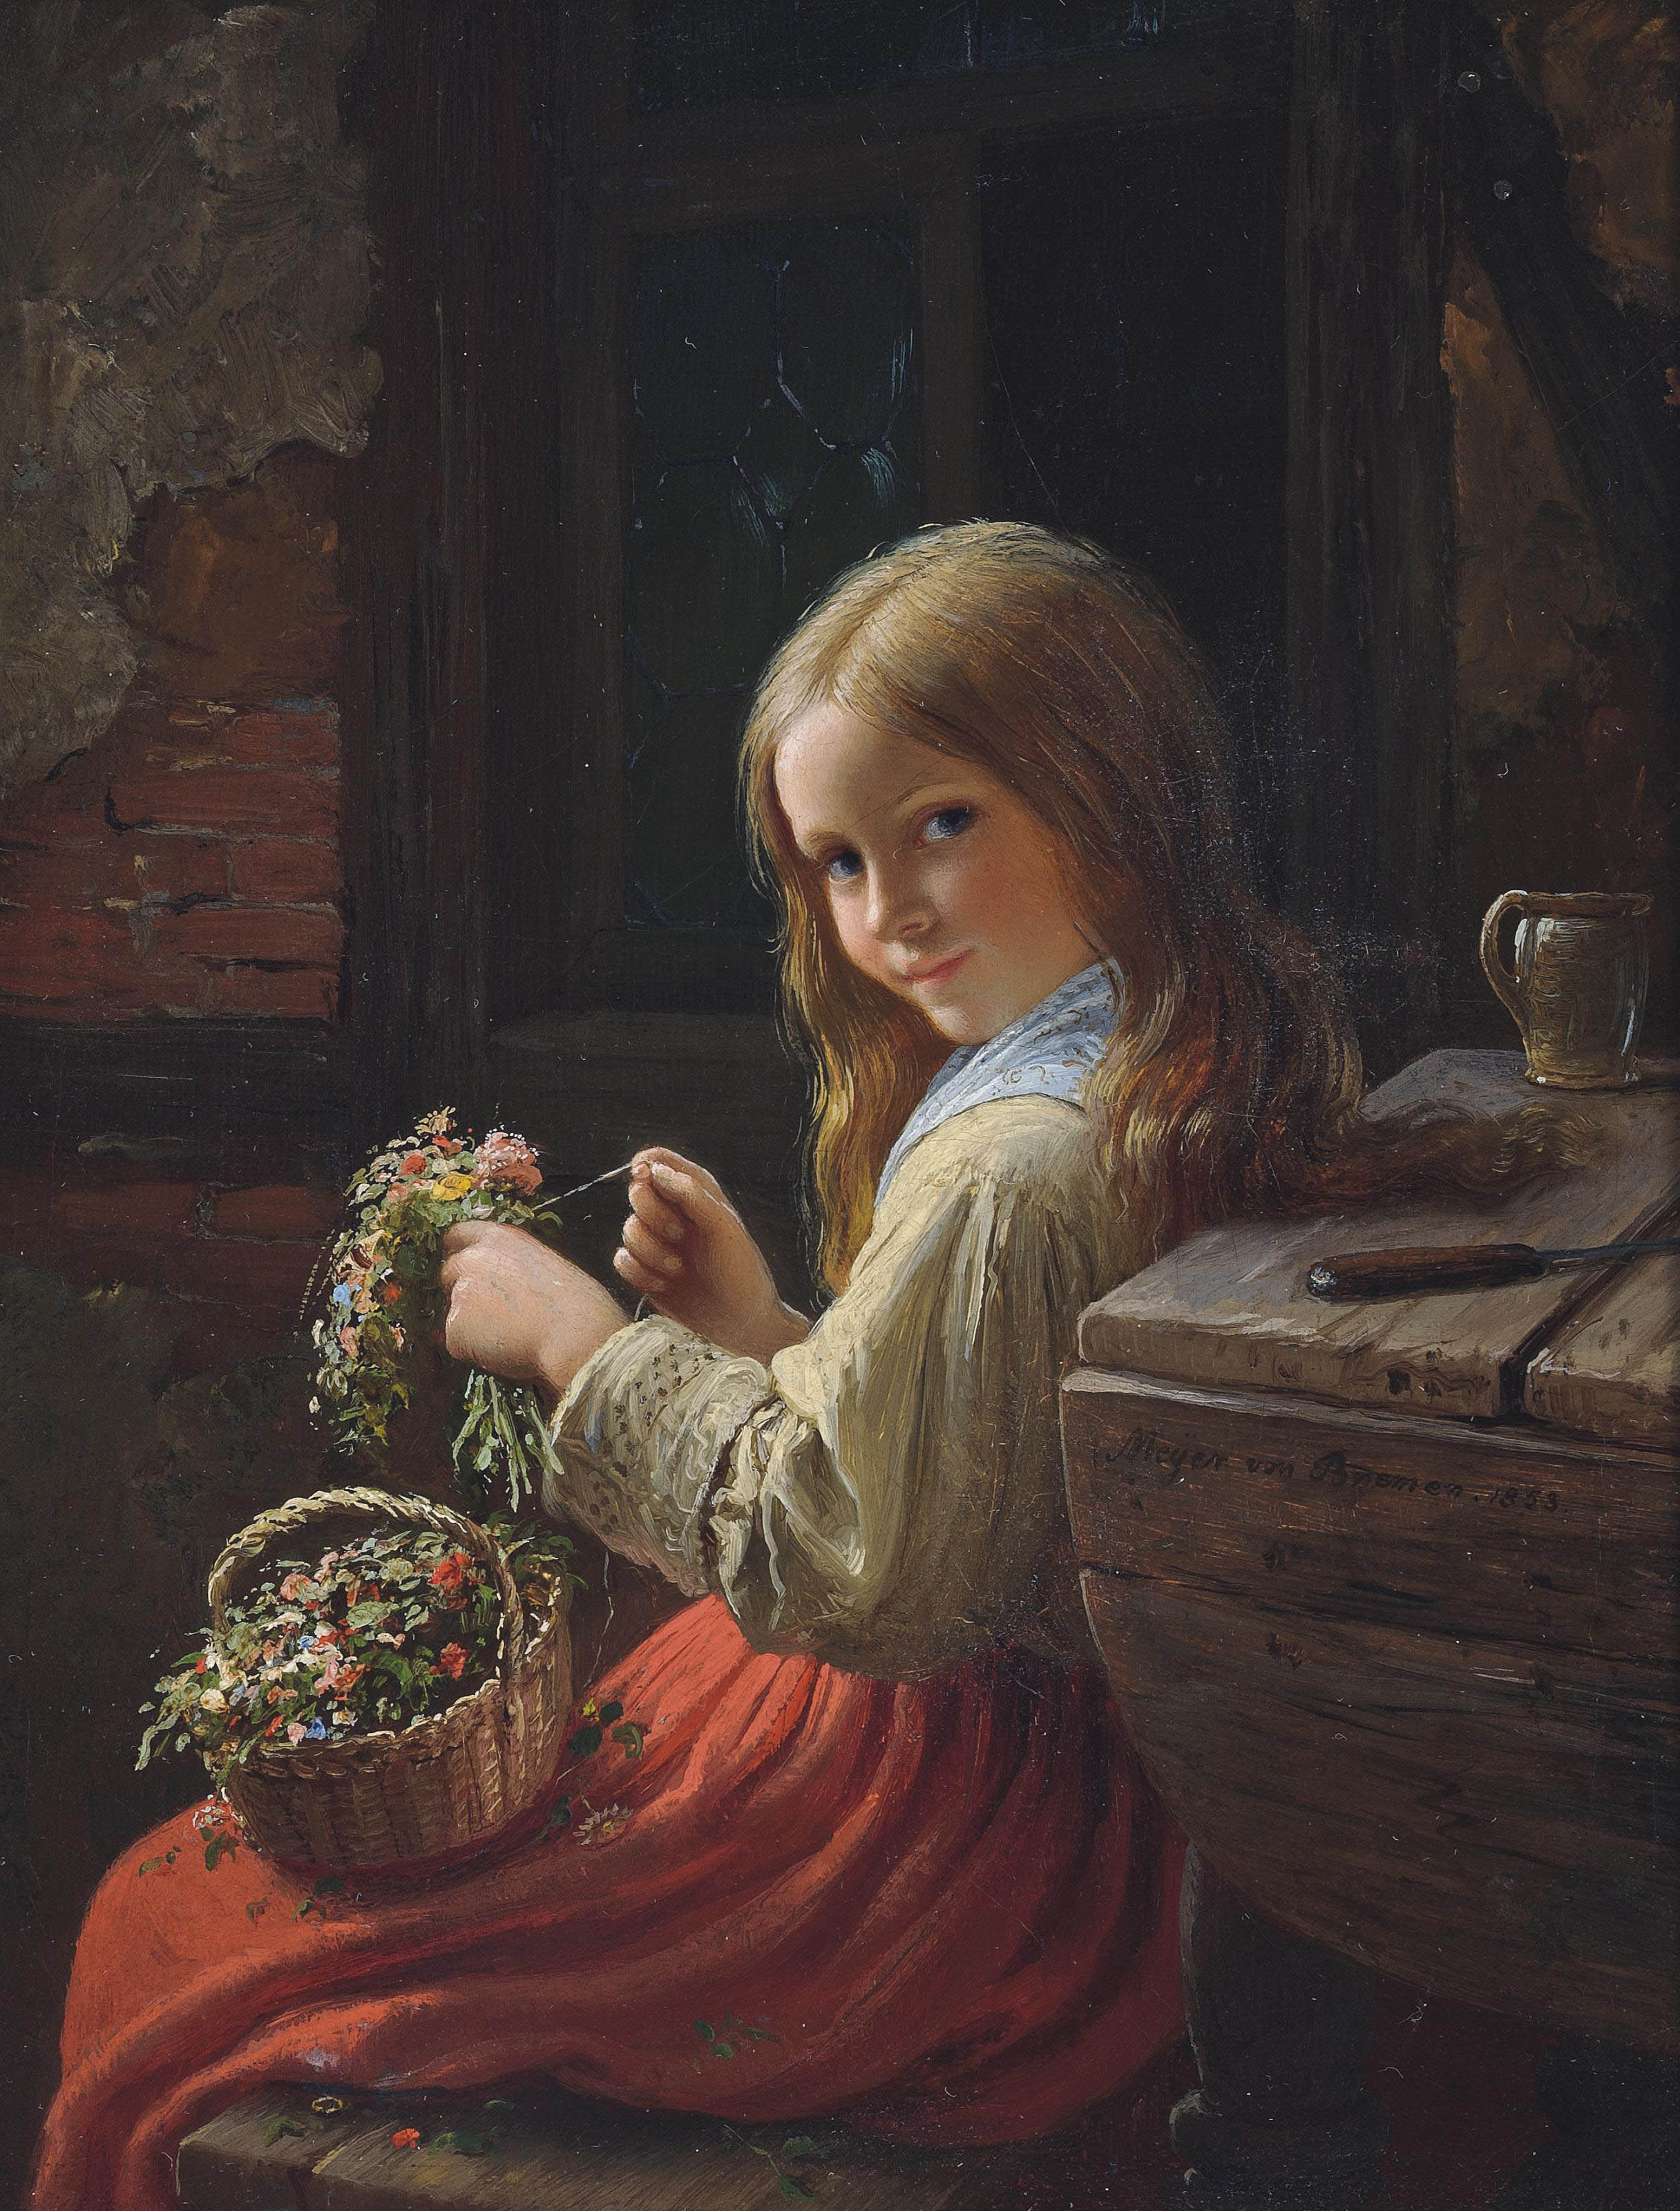 The little flower girl